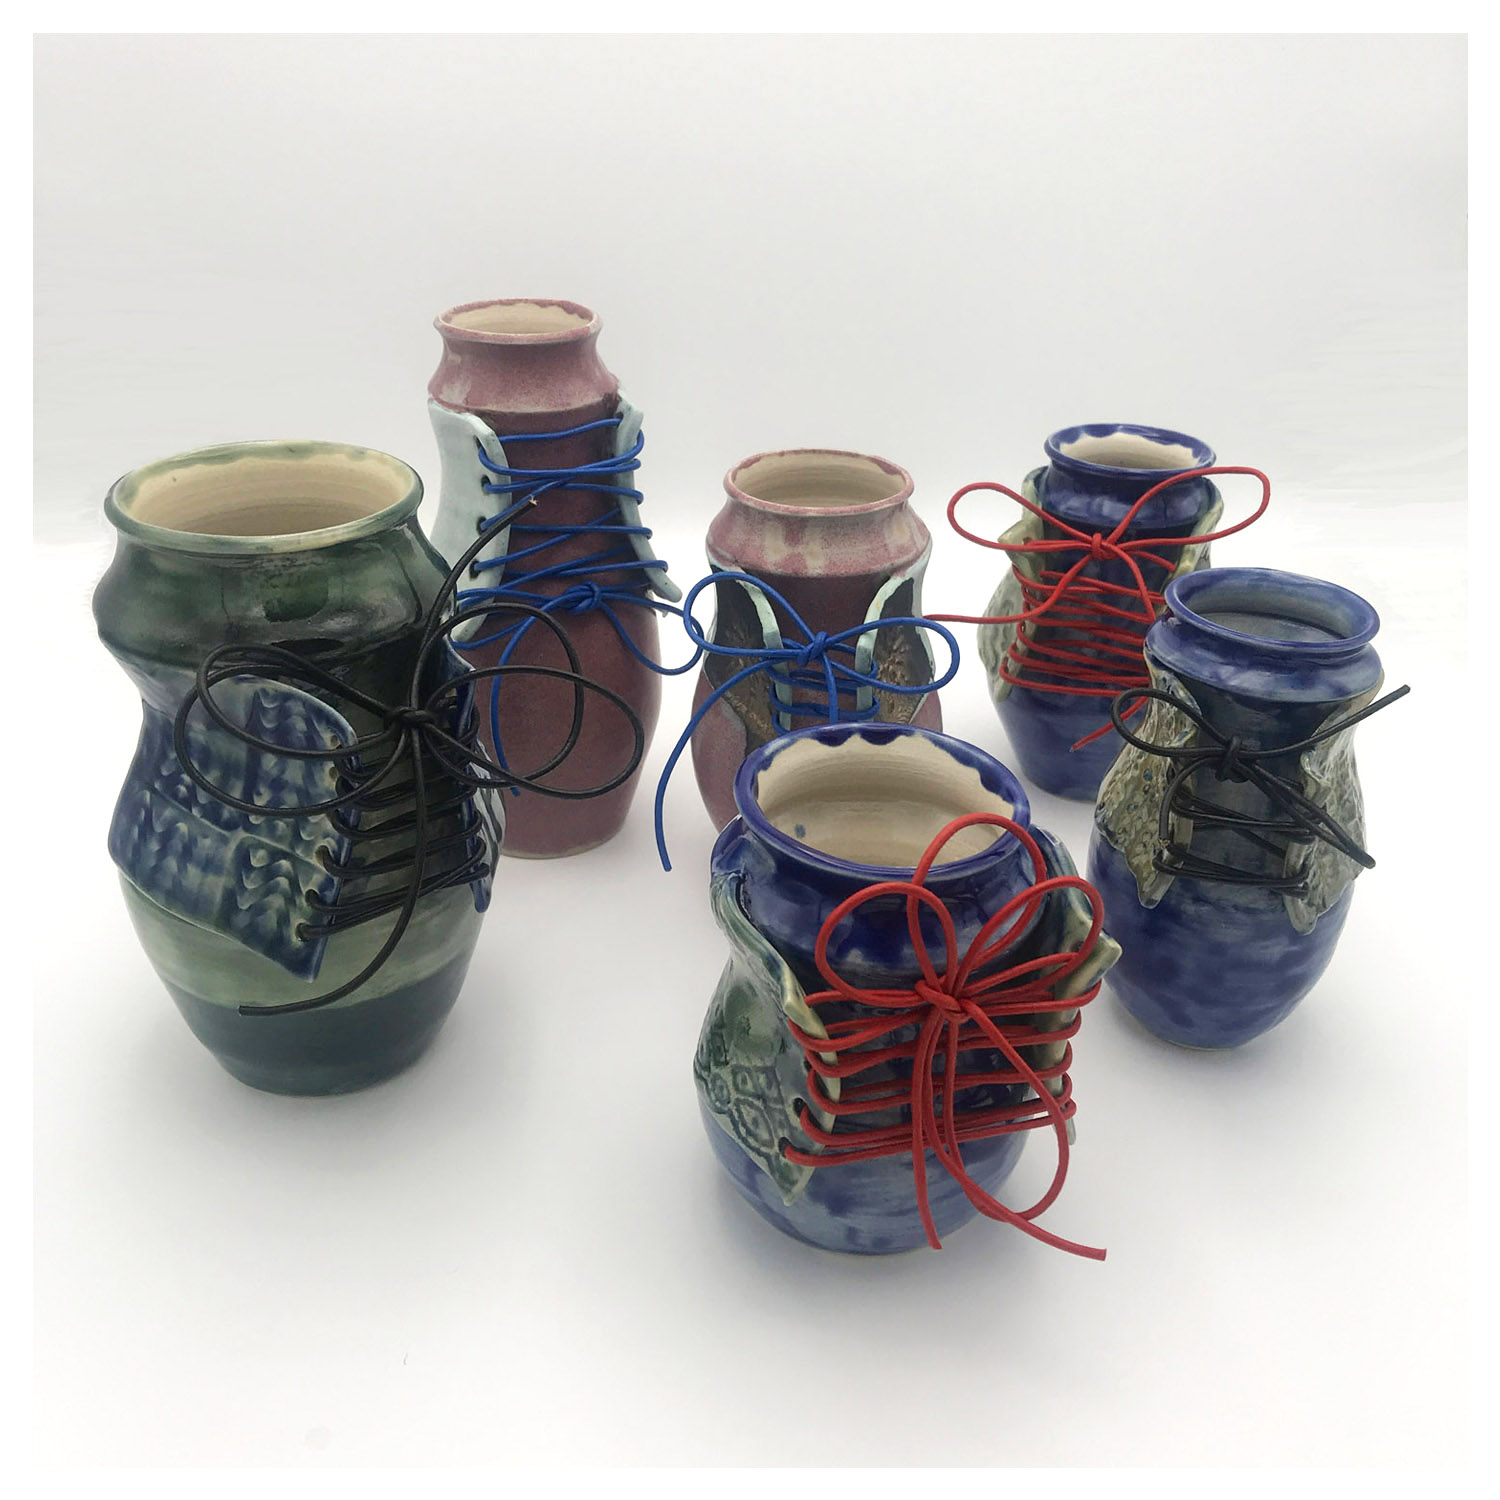 Nicole Lyster Sassy Lady Bottles Stoneware Ceramic up to 200mm high up to £60 Green Blue and Pink Glazed Vases with Spanish Lace Bodice and Leather Laces Suitable for Flowers or Storing Items.